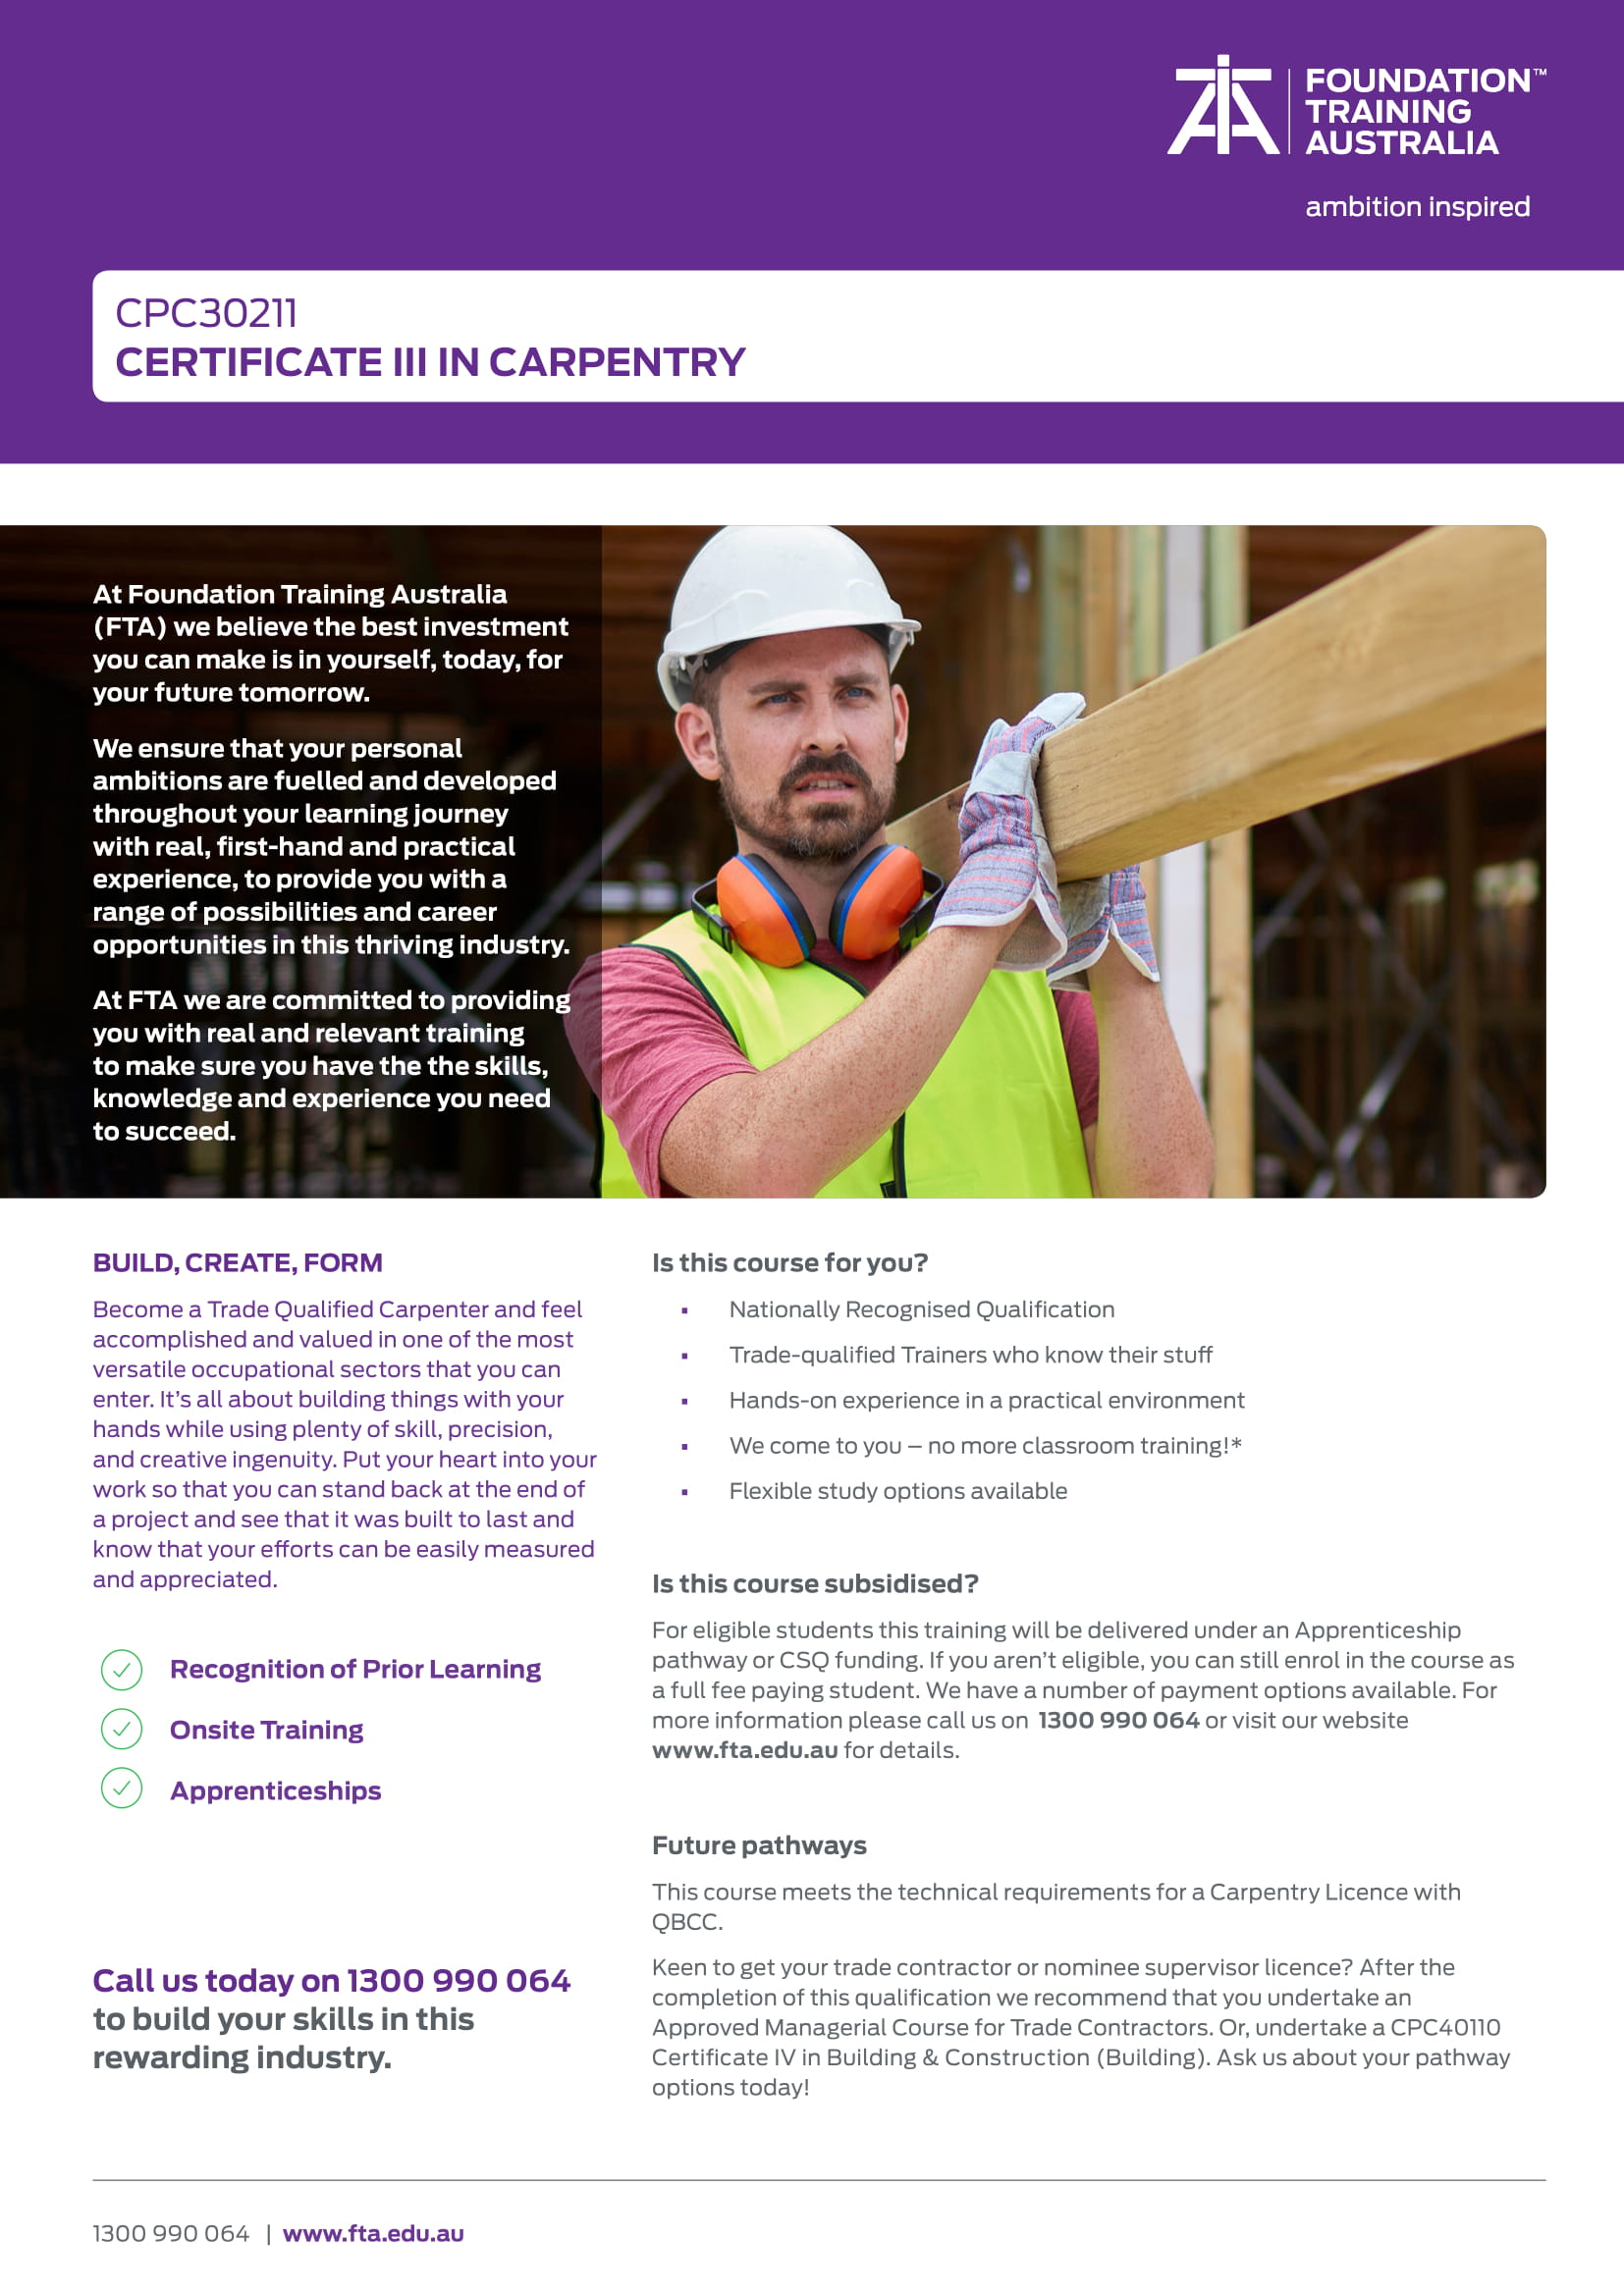 https://www.fta.edu.au/wp-content/uploads/2020/06/TP1.MK_.012-Certificate-III-in-Carpentry-Course-Flyer-CPC30211-V2-DIGITAL-1.jpg